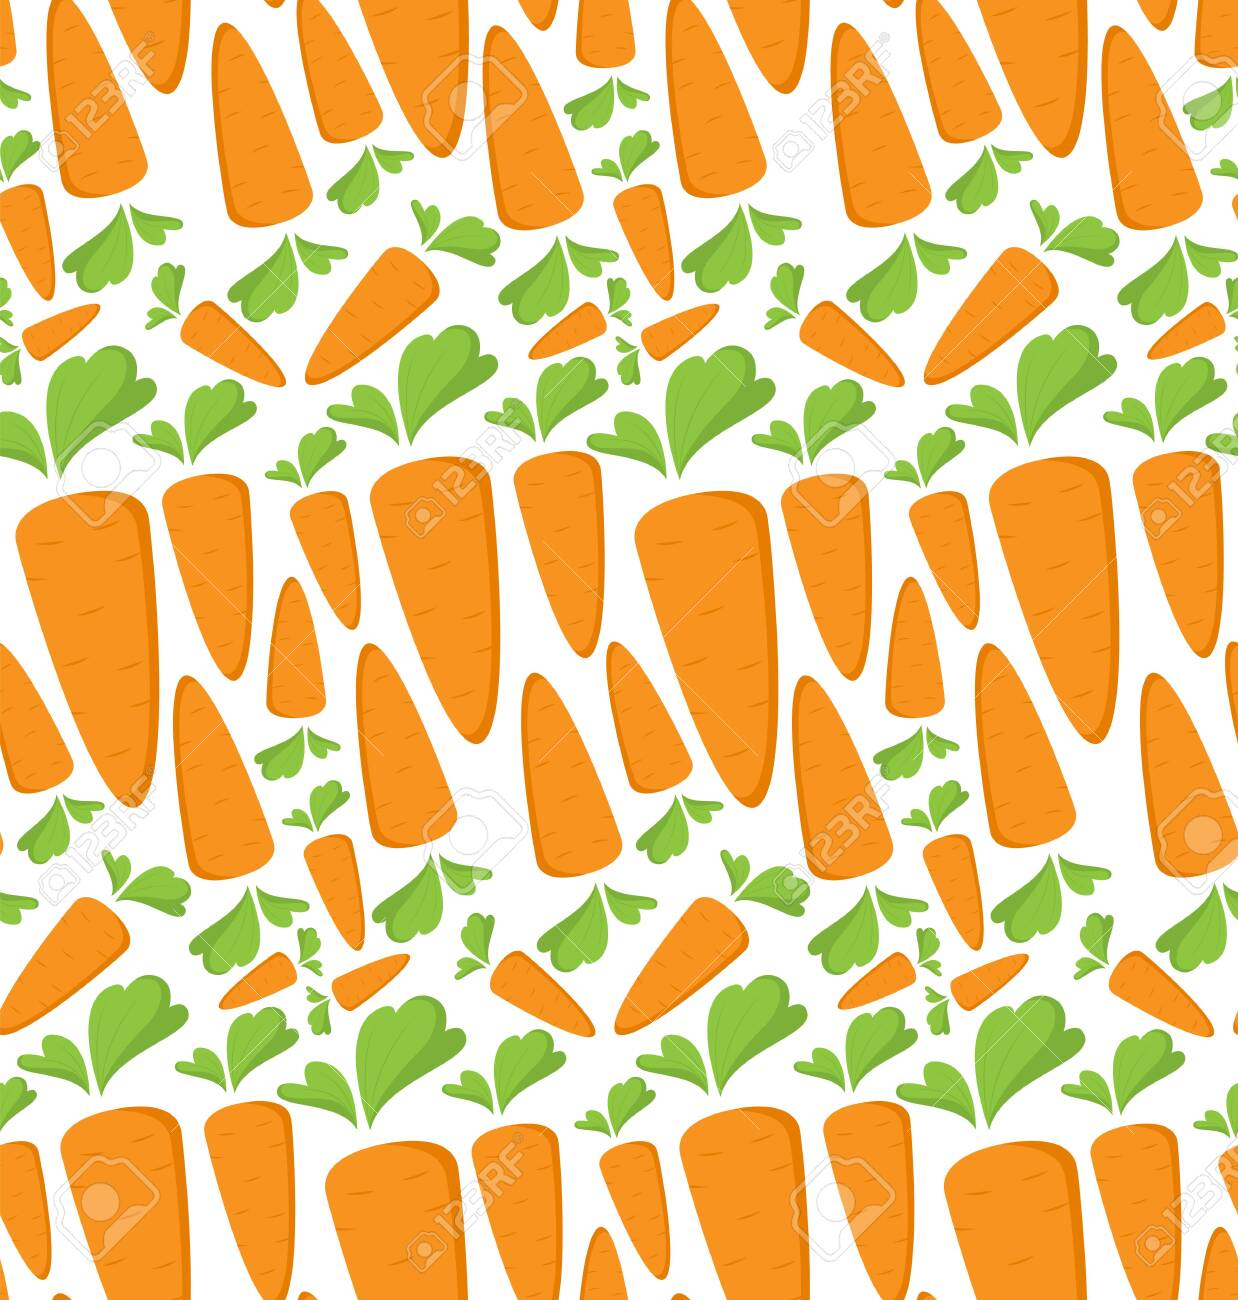 Carrot Seamless Pattern With Flat Orange Vegetable Cartoon Food Royalty Free Cliparts Vectors And Stock Illustration Image